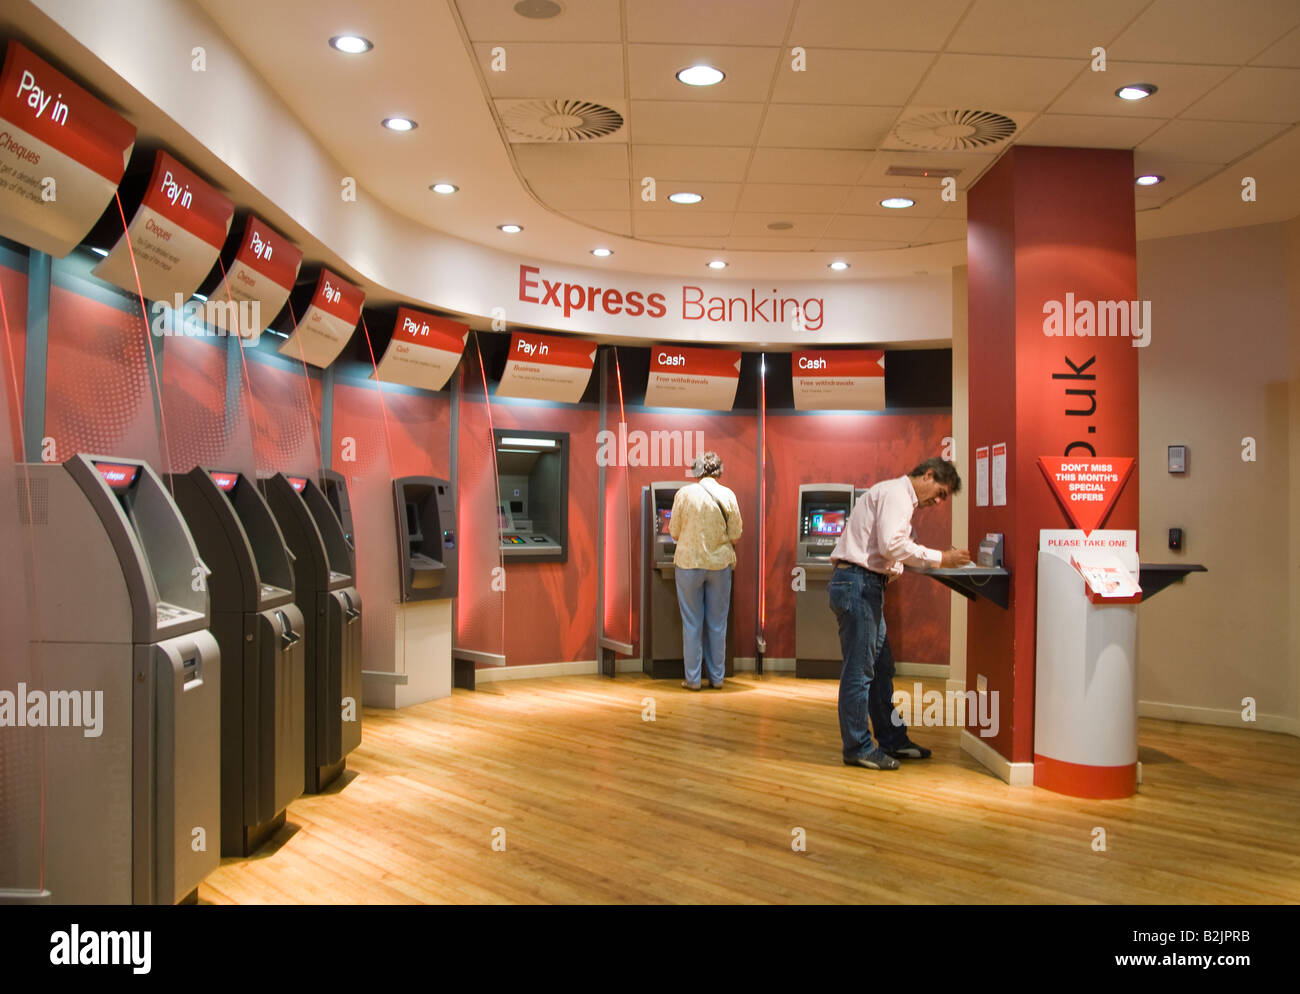 people using automated self service machines at a branch